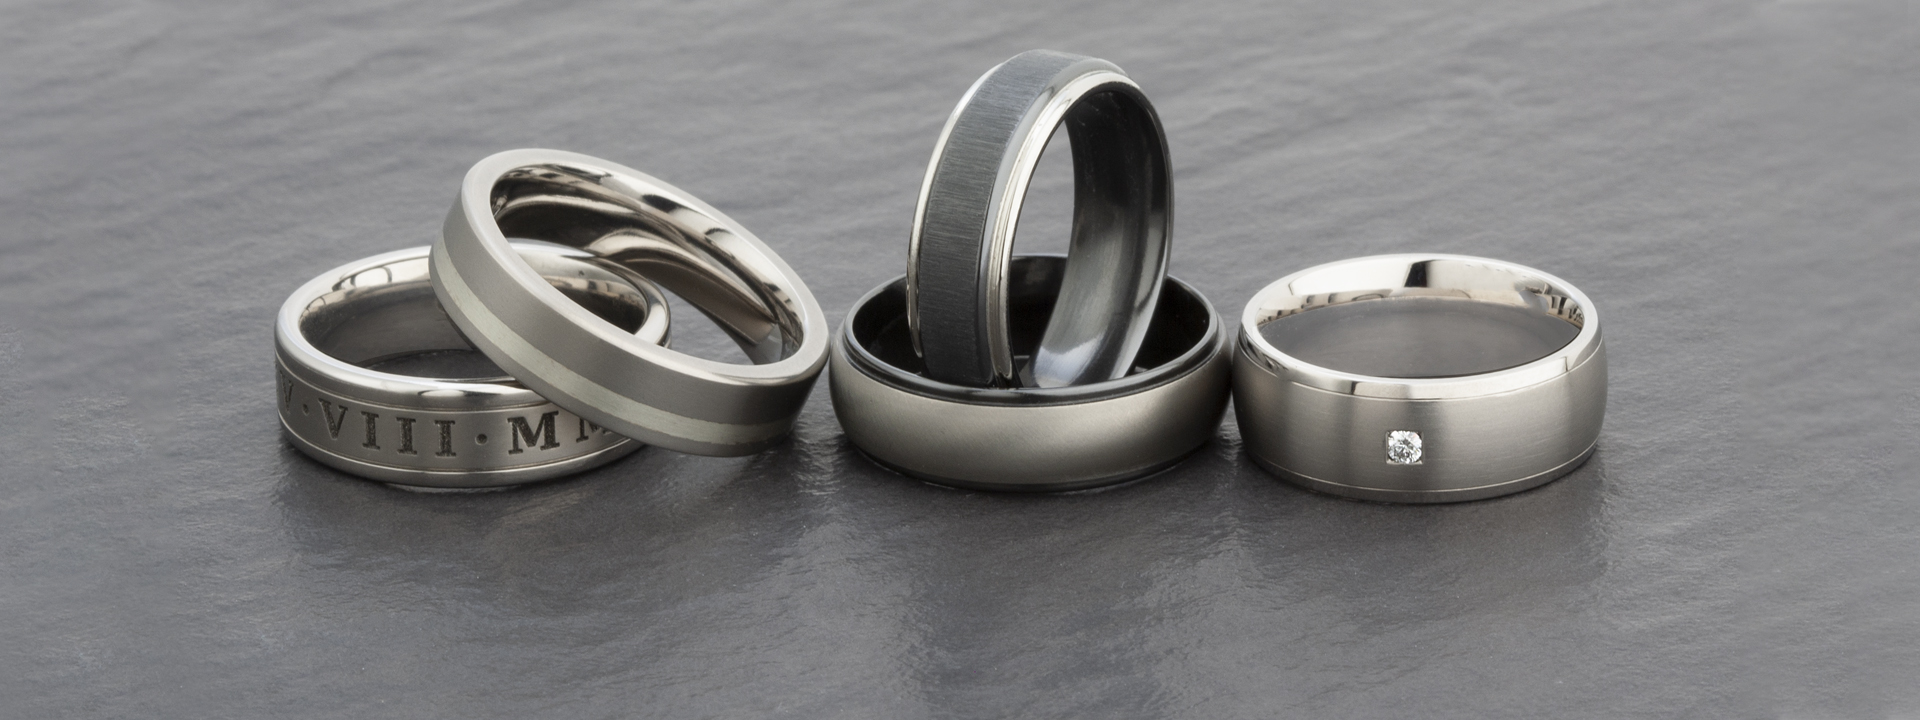 The Significance Of The Titanium Wedding Rings